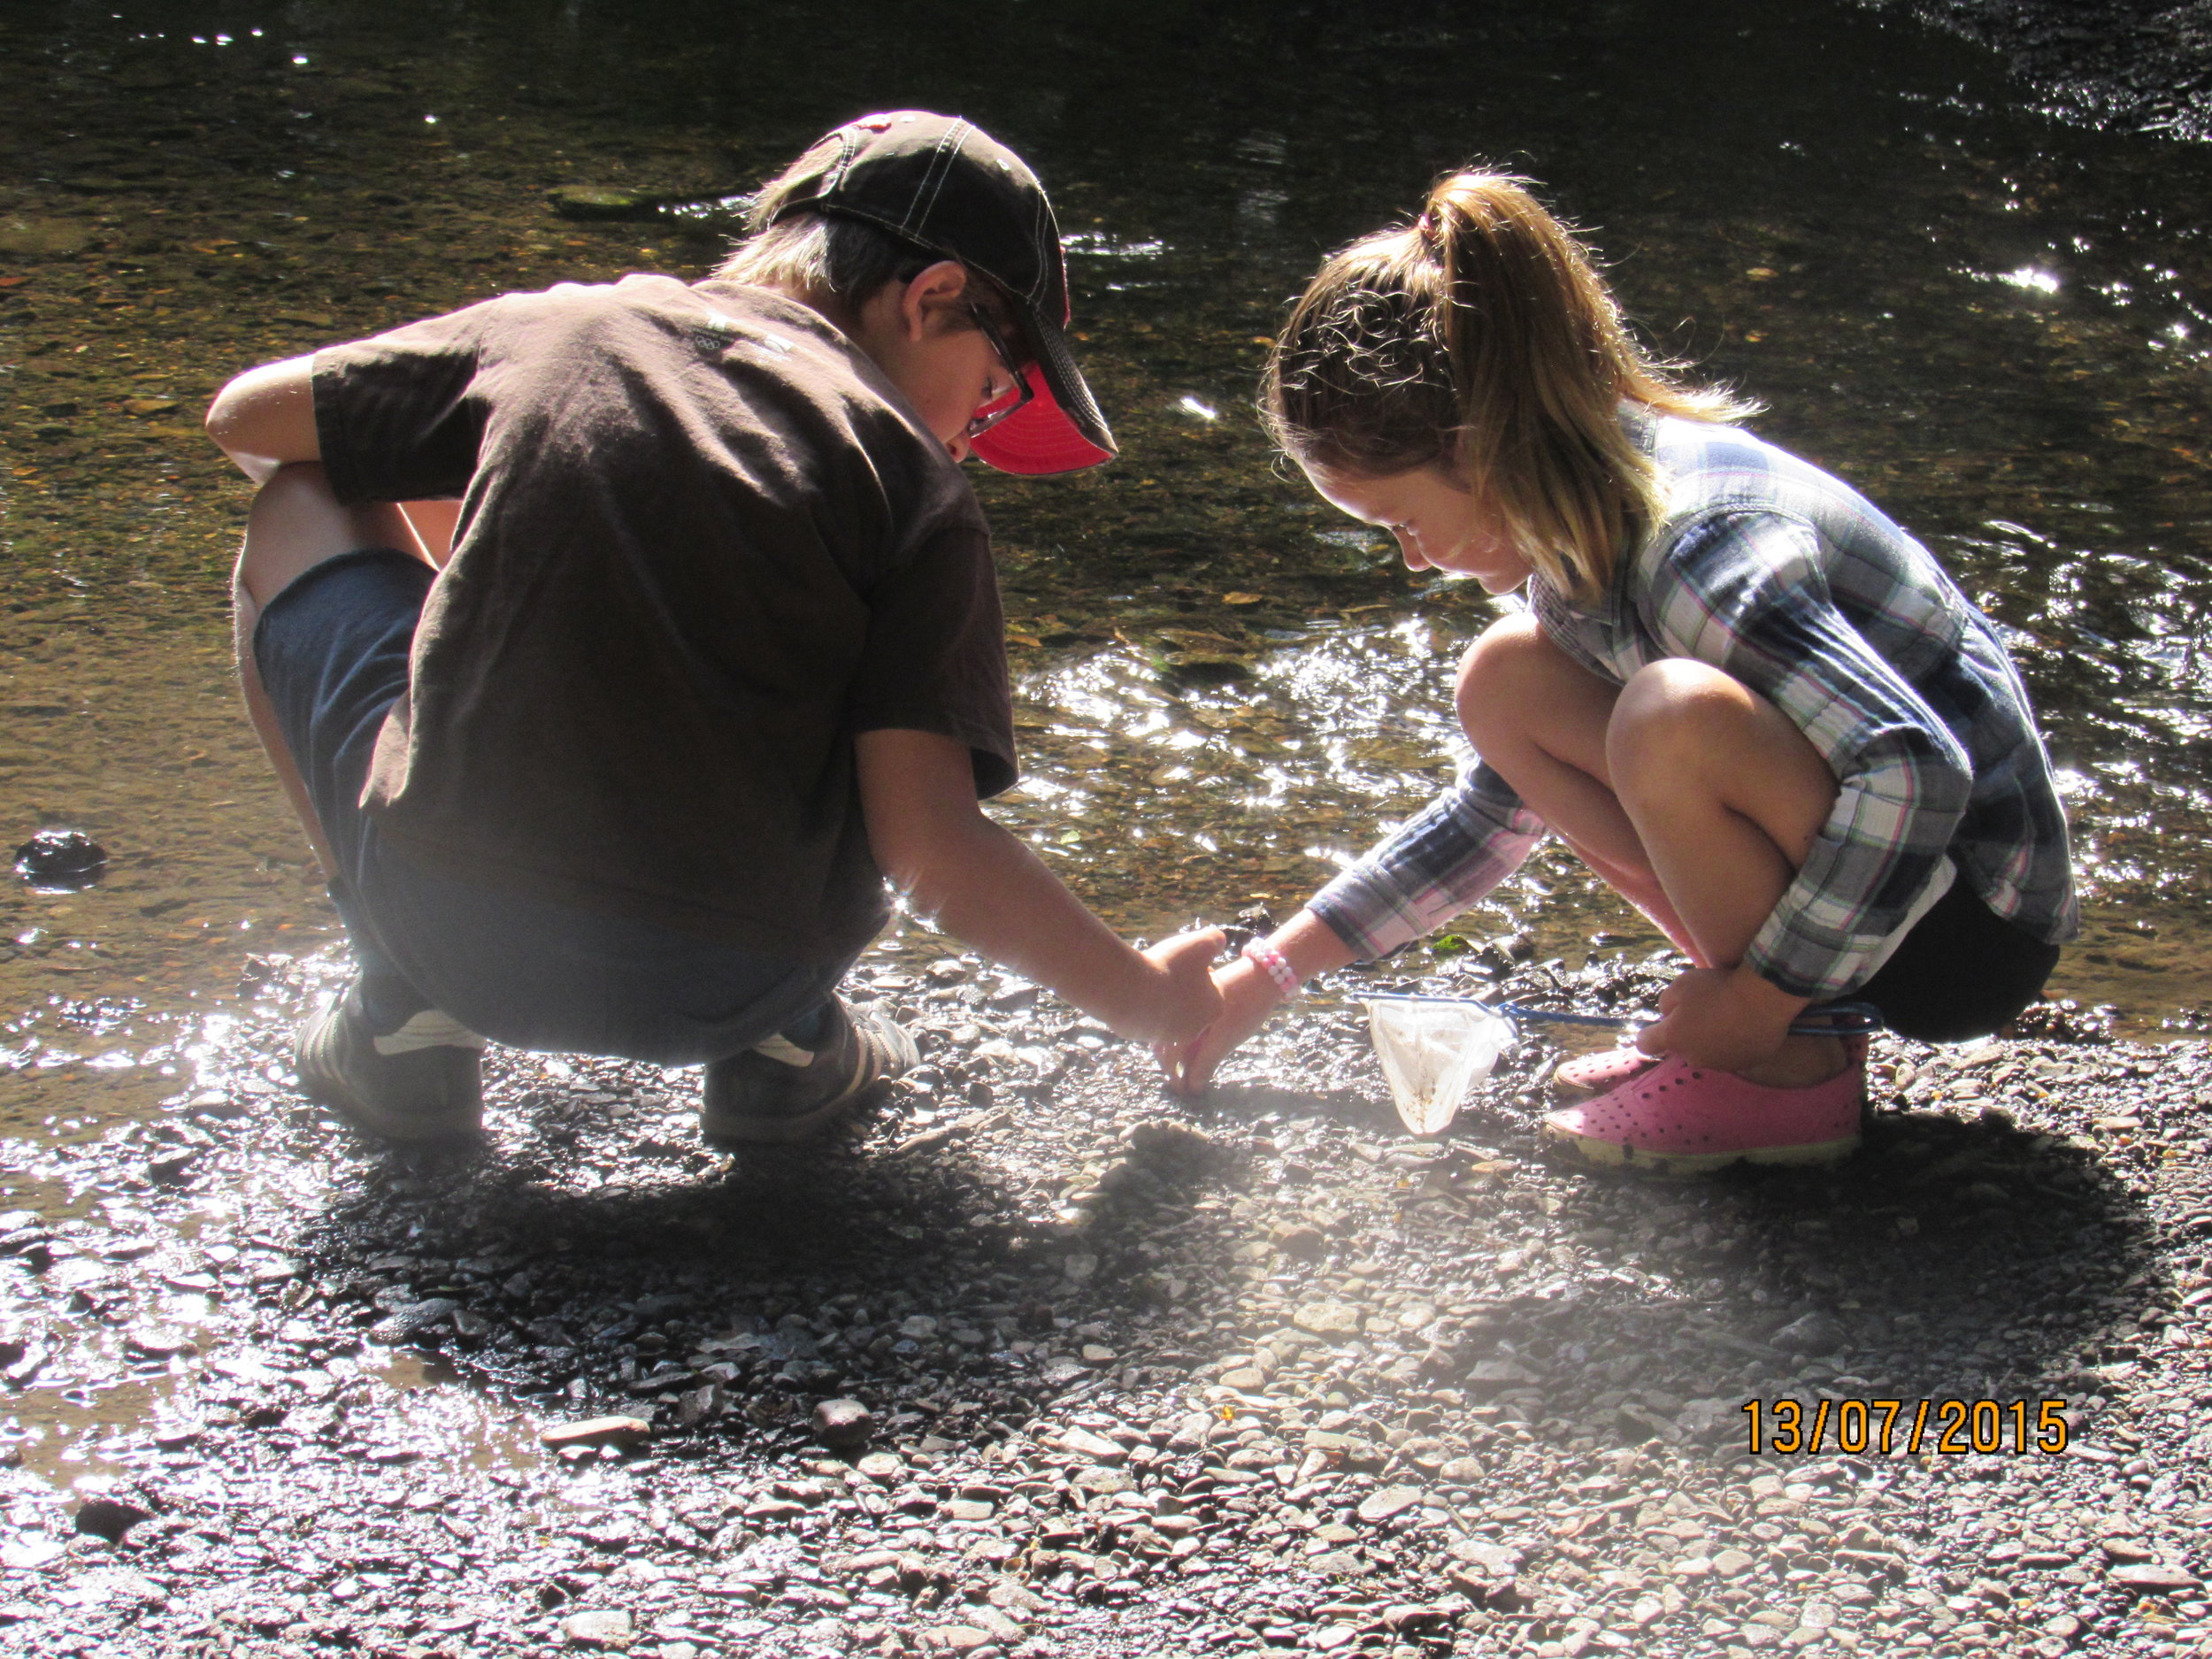 Searching for invertebrates in freshwater creeks, students learn a good deal about the insects that inhabit riparian ecosystems.